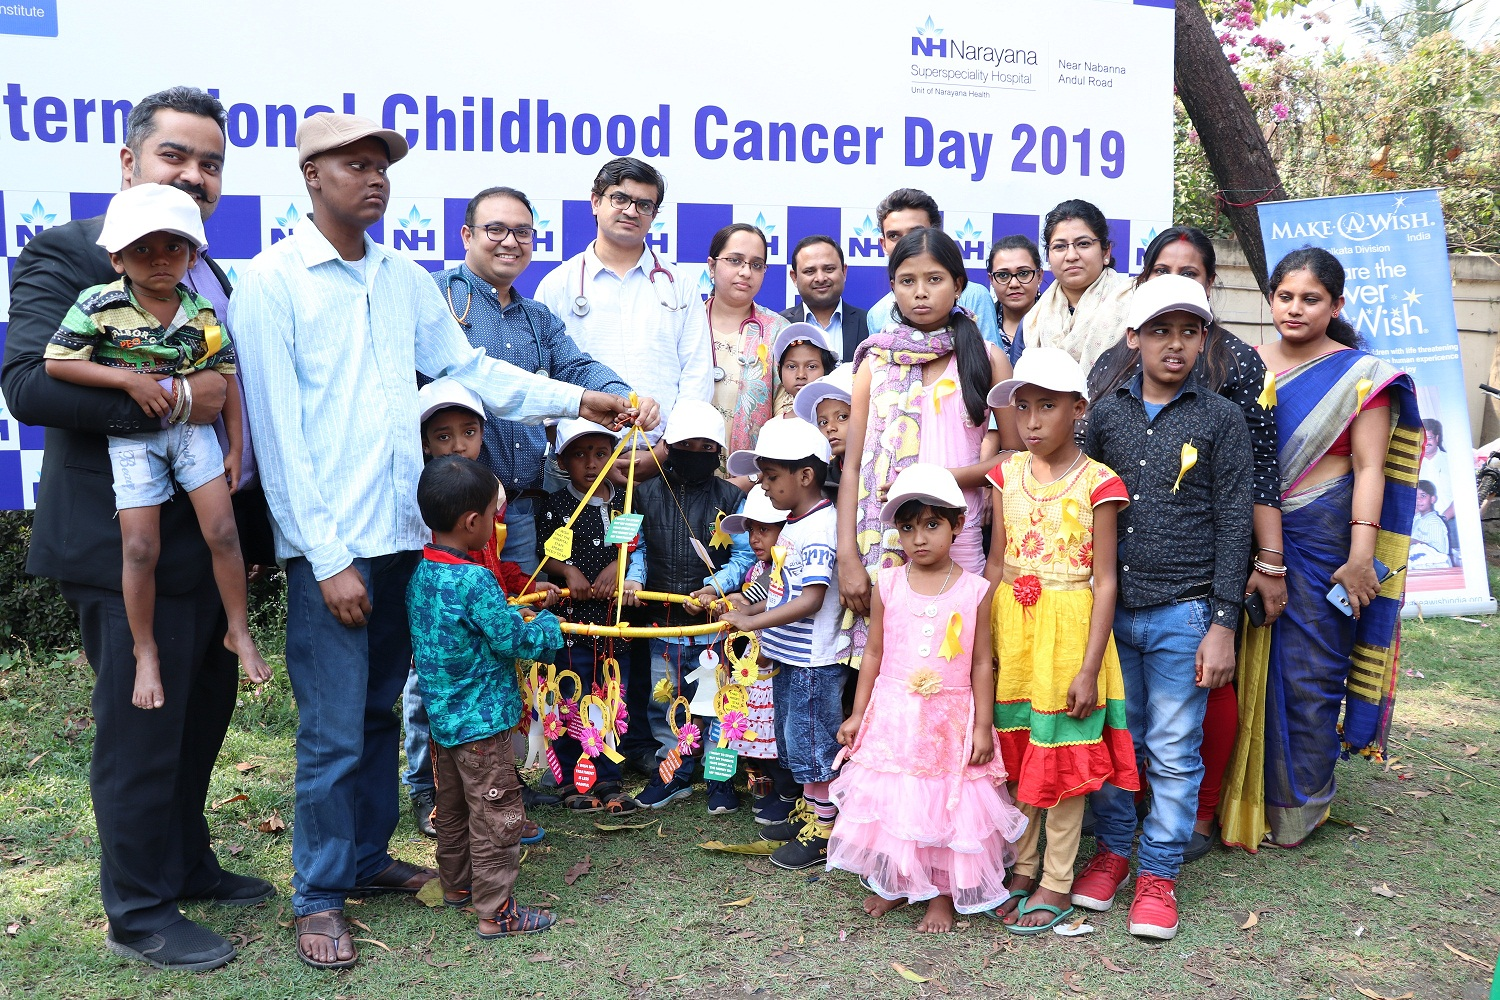 Narayana Superspeciality Hospital, Howrah conducts an awareness programme on Childhood Cancer to commemorate International Childhood Cancer Day